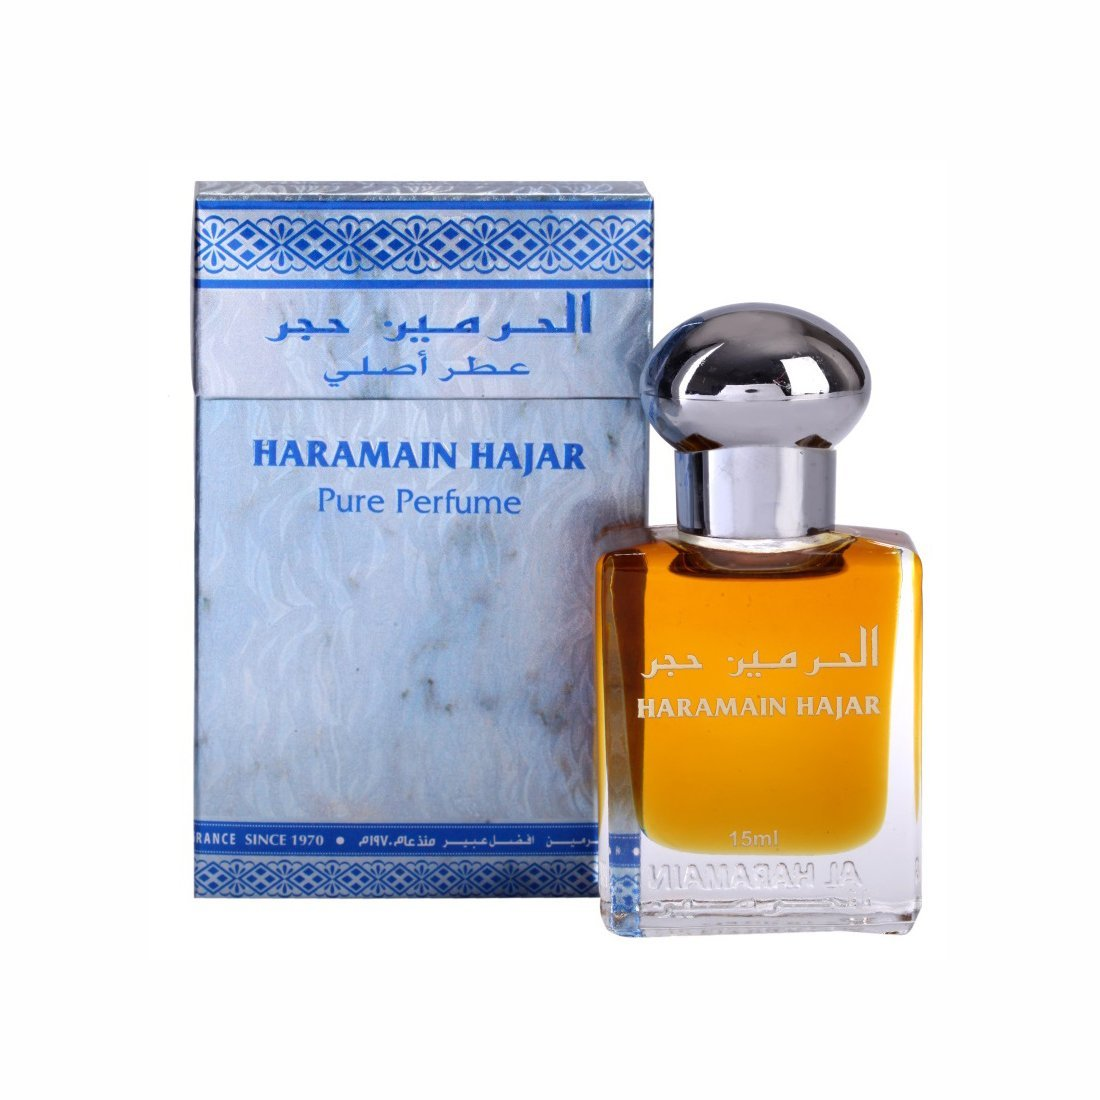 Al Haramain Firdous & Hajar Fragrance Pure Original Roll on Perfume Oil Pack of 2 (Attar) - 2 x 15 ml